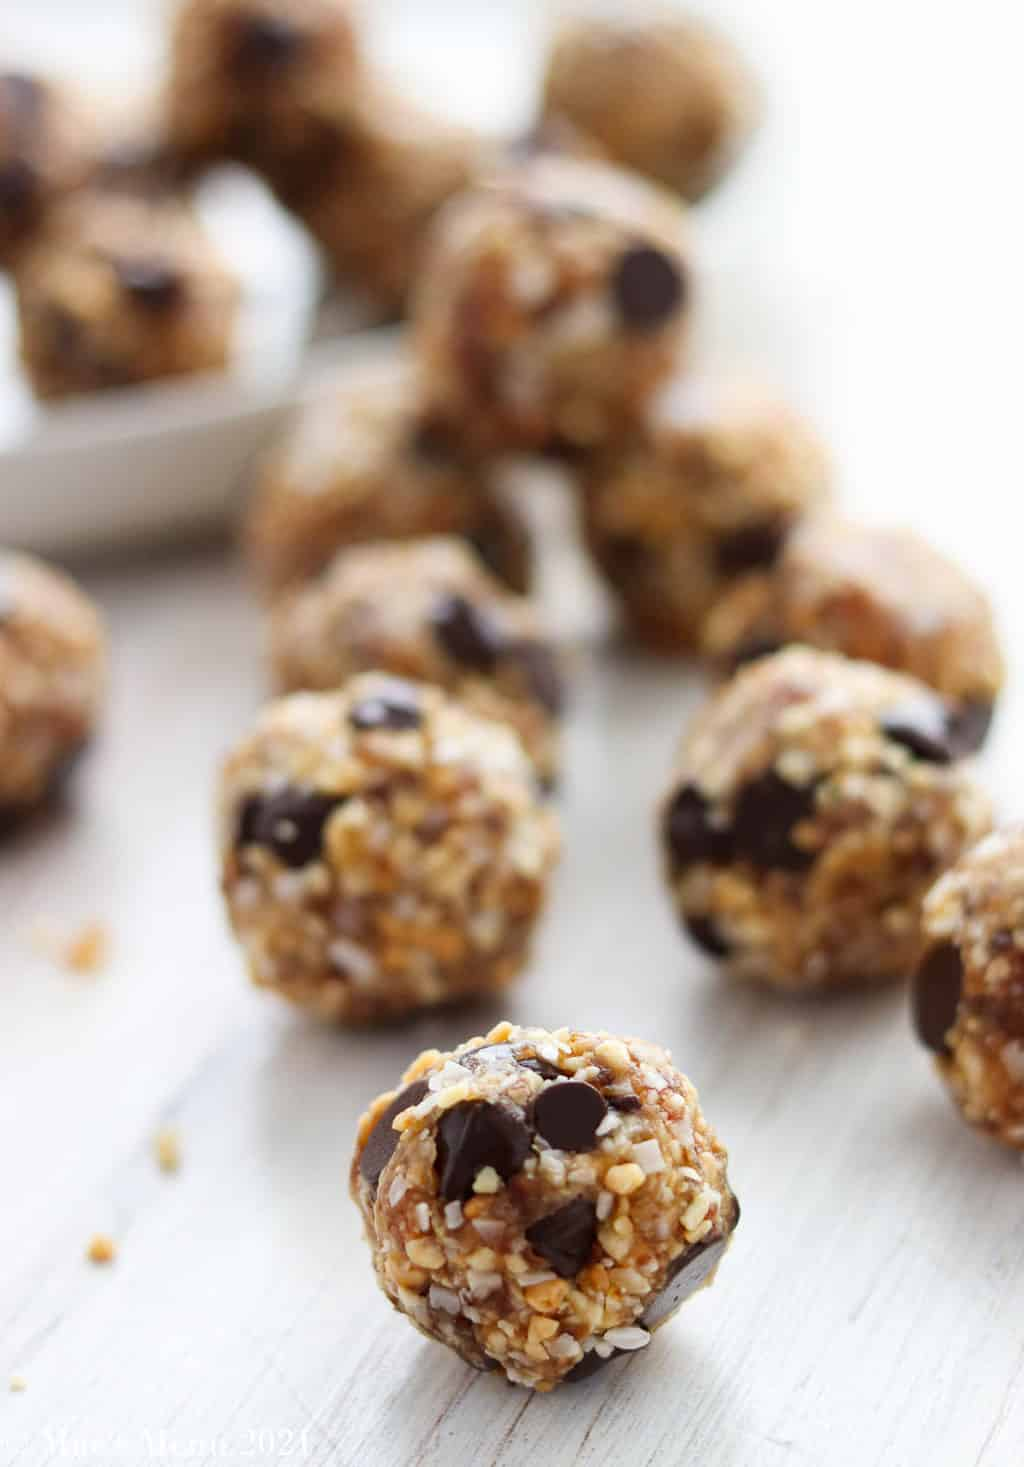 Date balls on a piece of wood in front of a plate of the balls